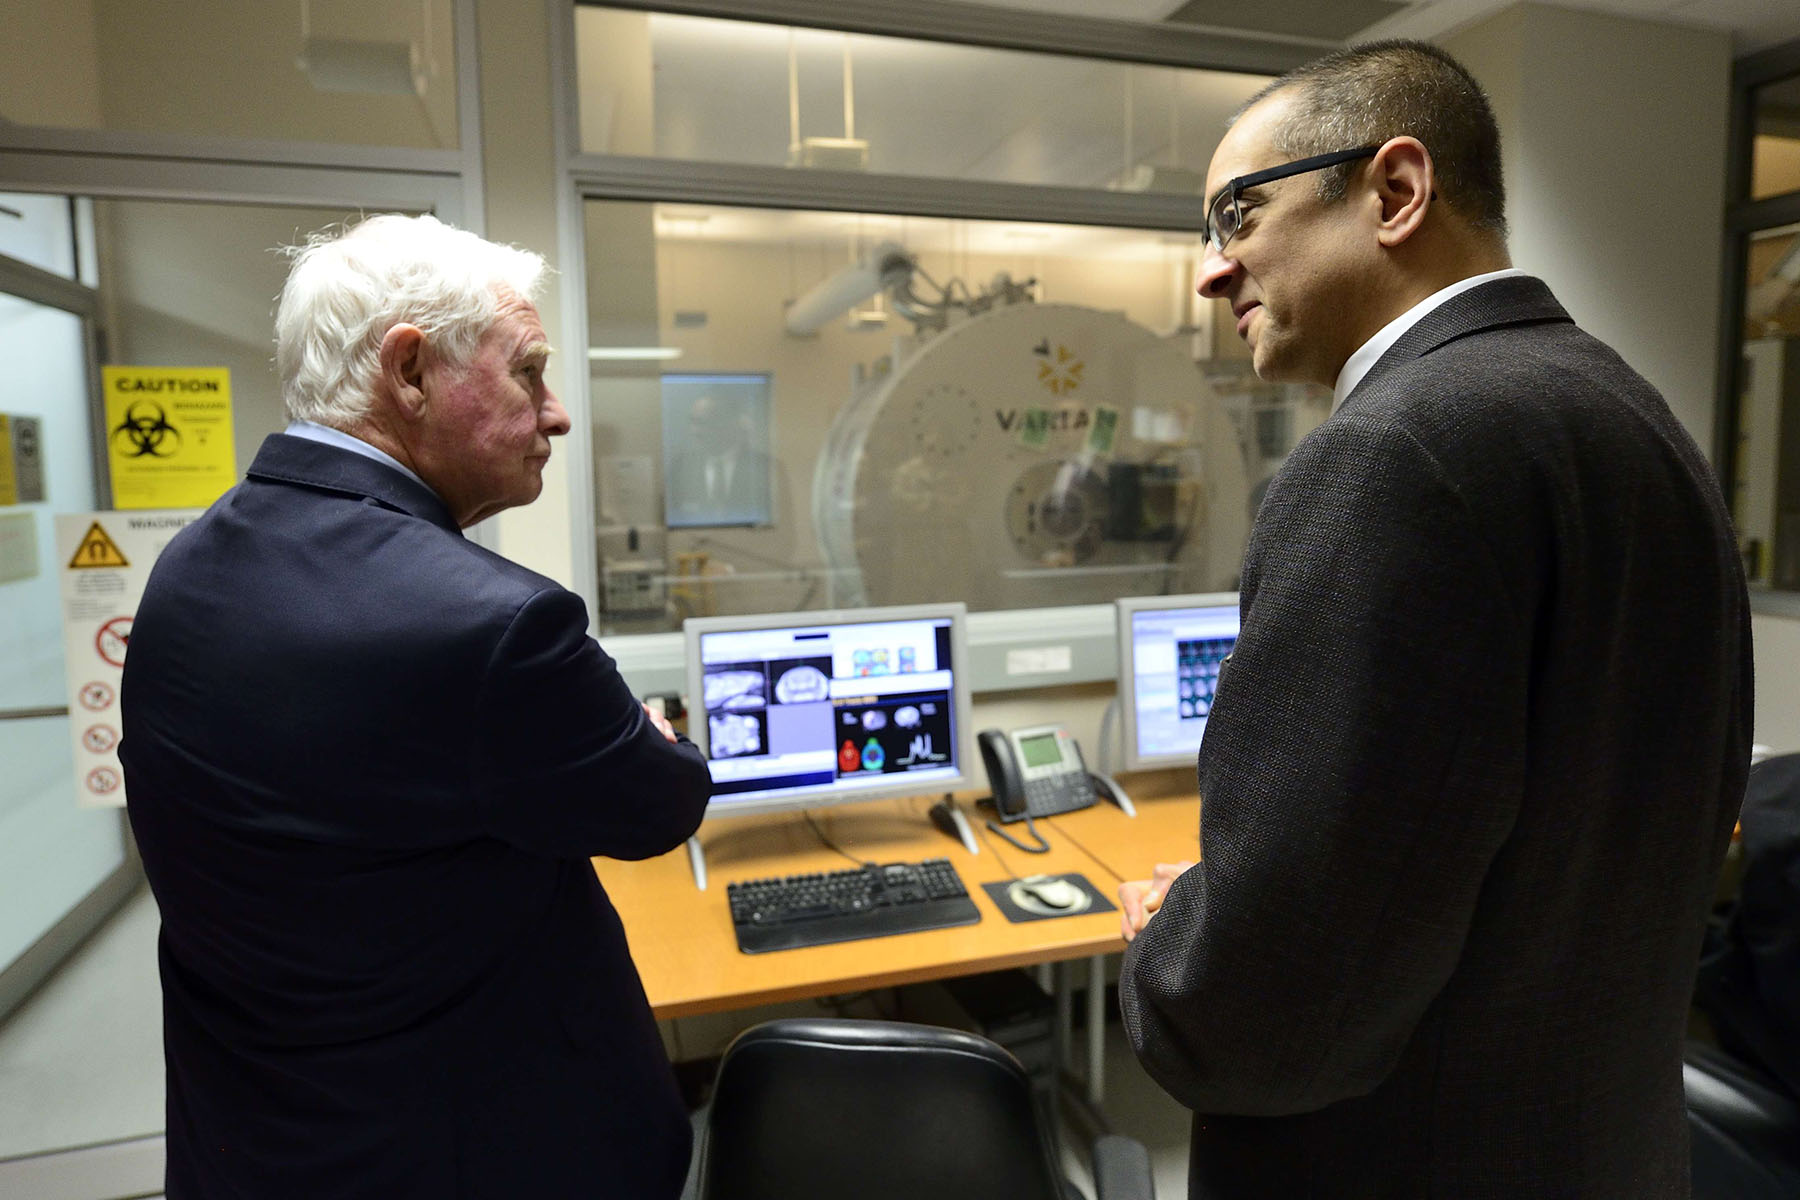 The Governor General toured the Robarts Research Institute's concussion research and imaging laboratories.